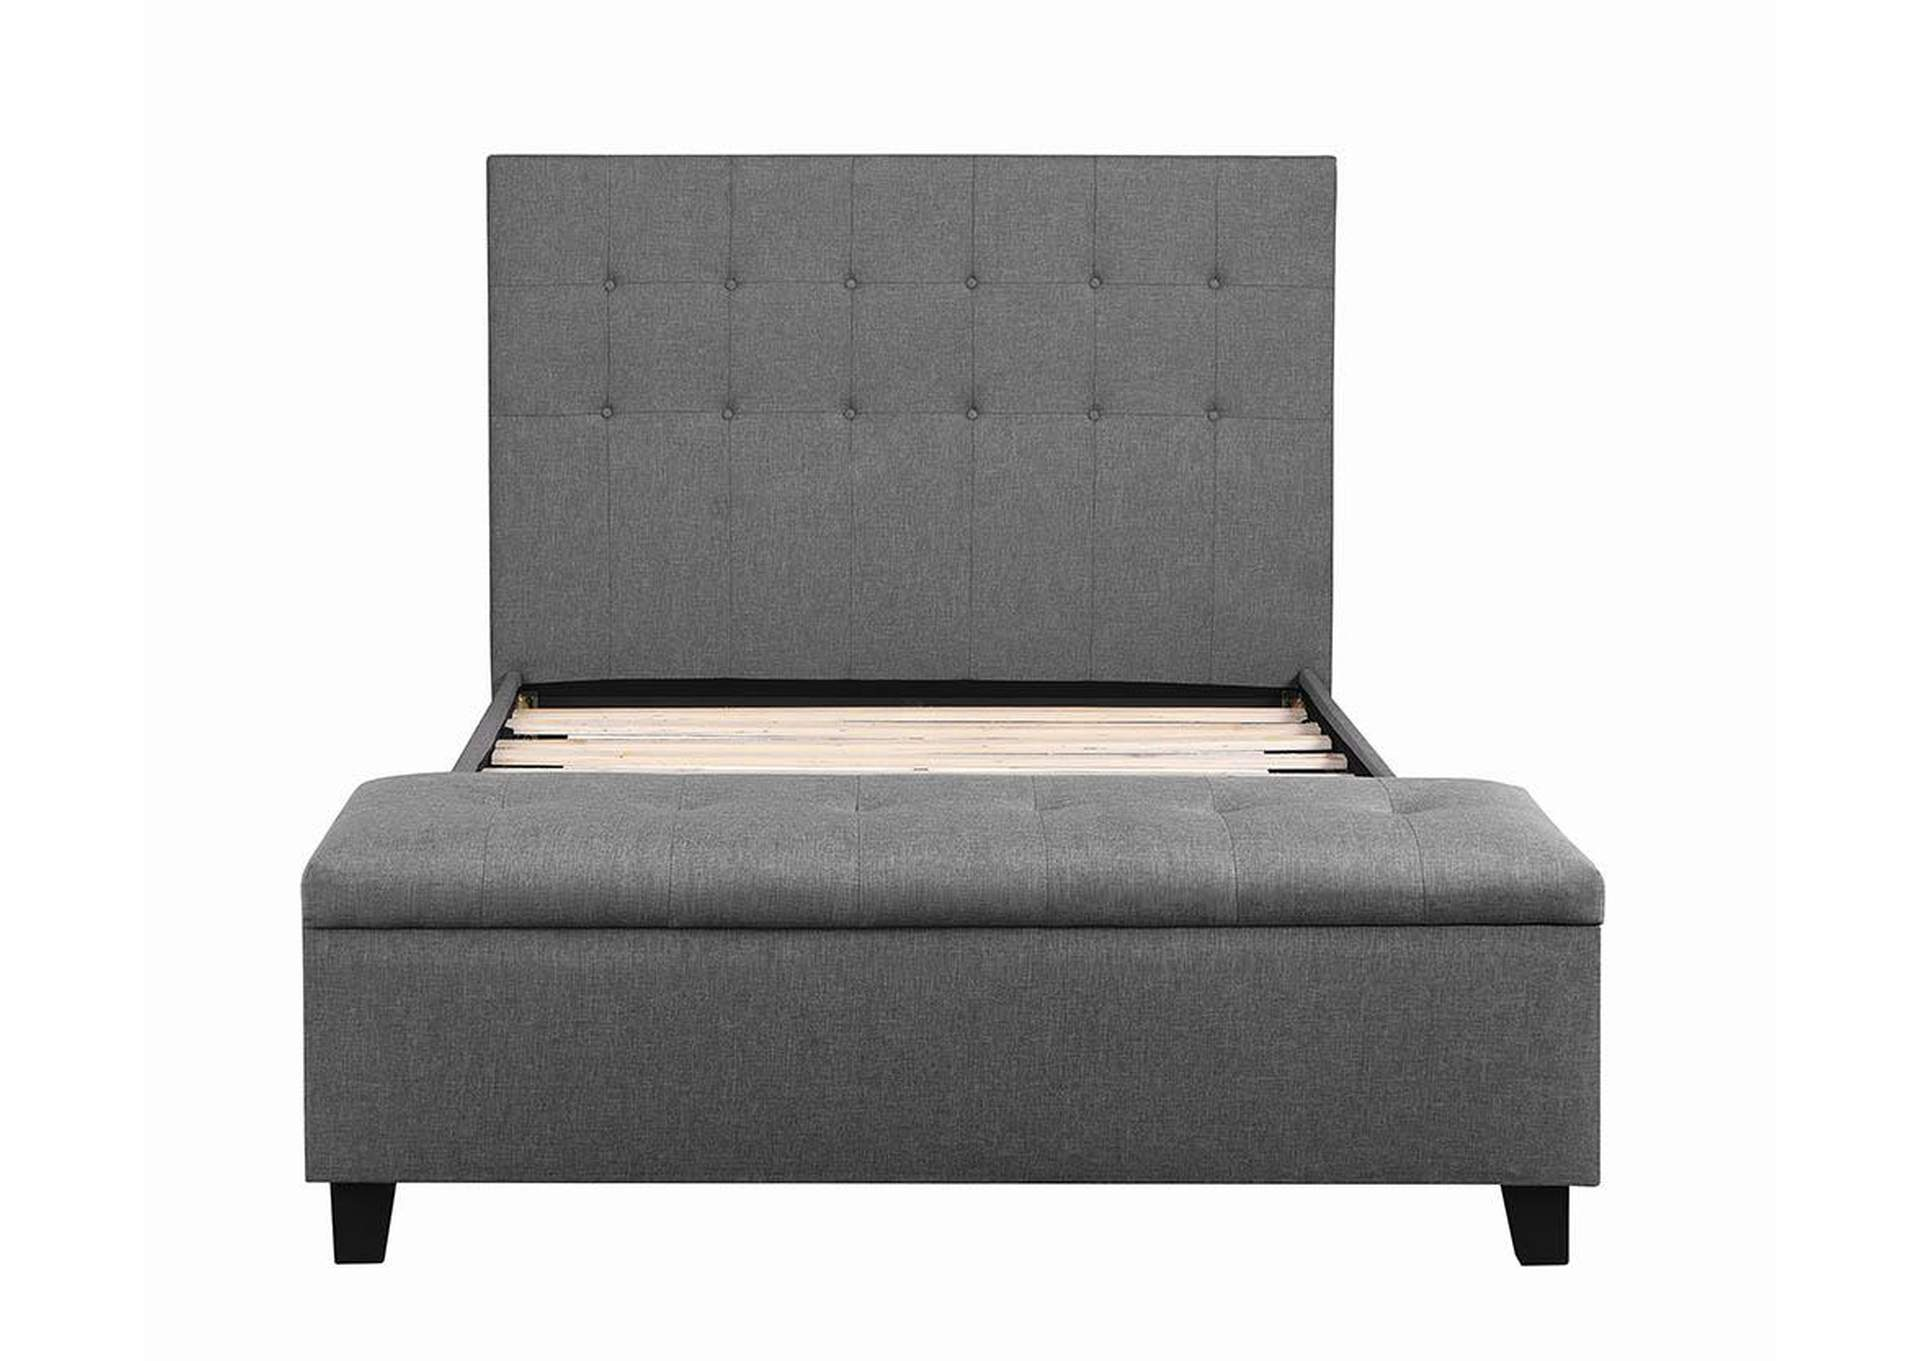 Halpert Light Grey Queen Platform Bed w/Storage,Coaster Furniture